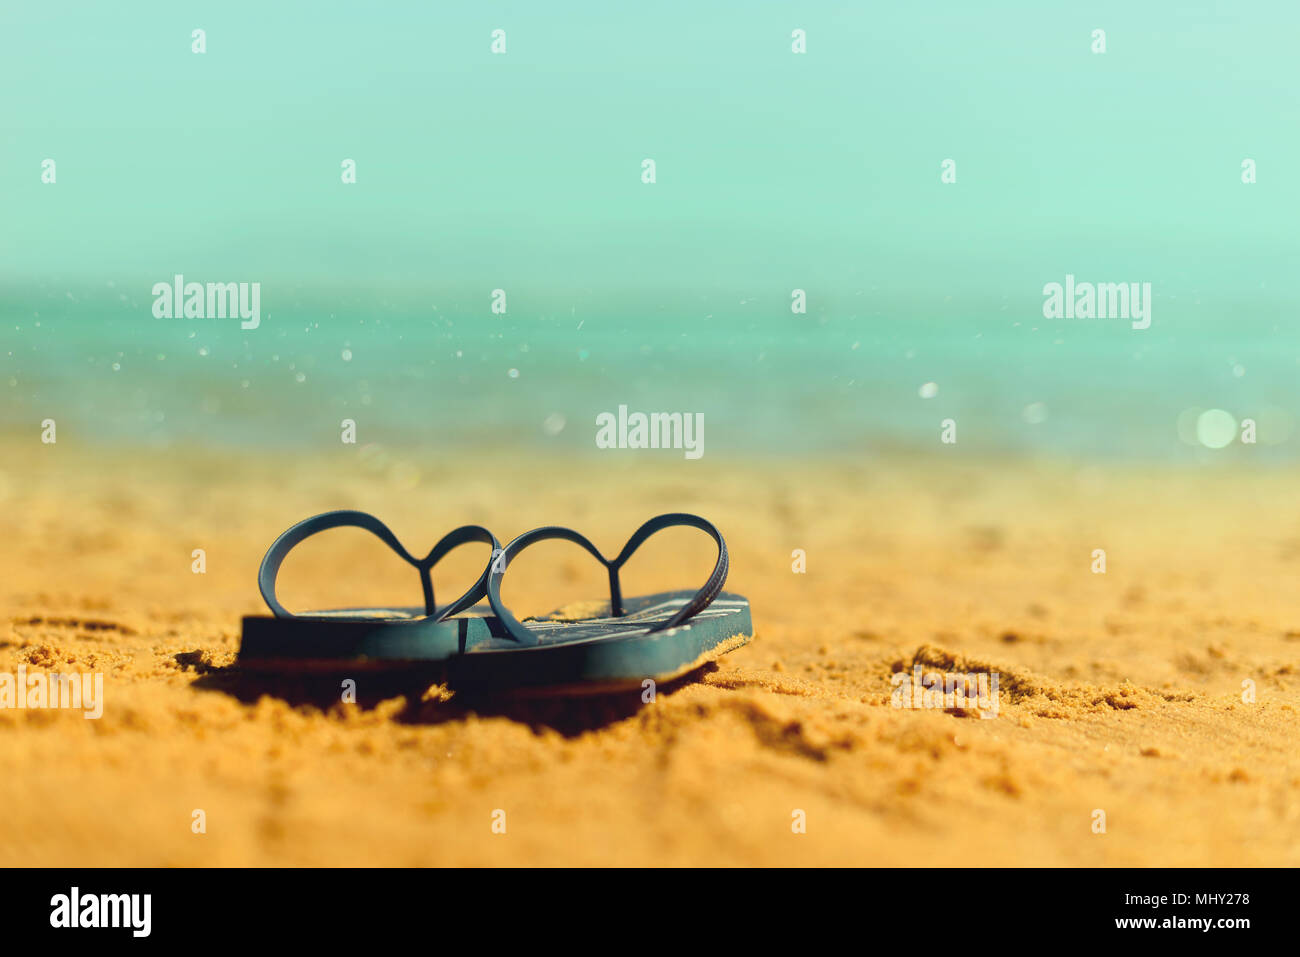 Navy flip flop on yellow sand beach with blue sea and sky background. Copy space. Summer, holiday and travel concept - Stock Image